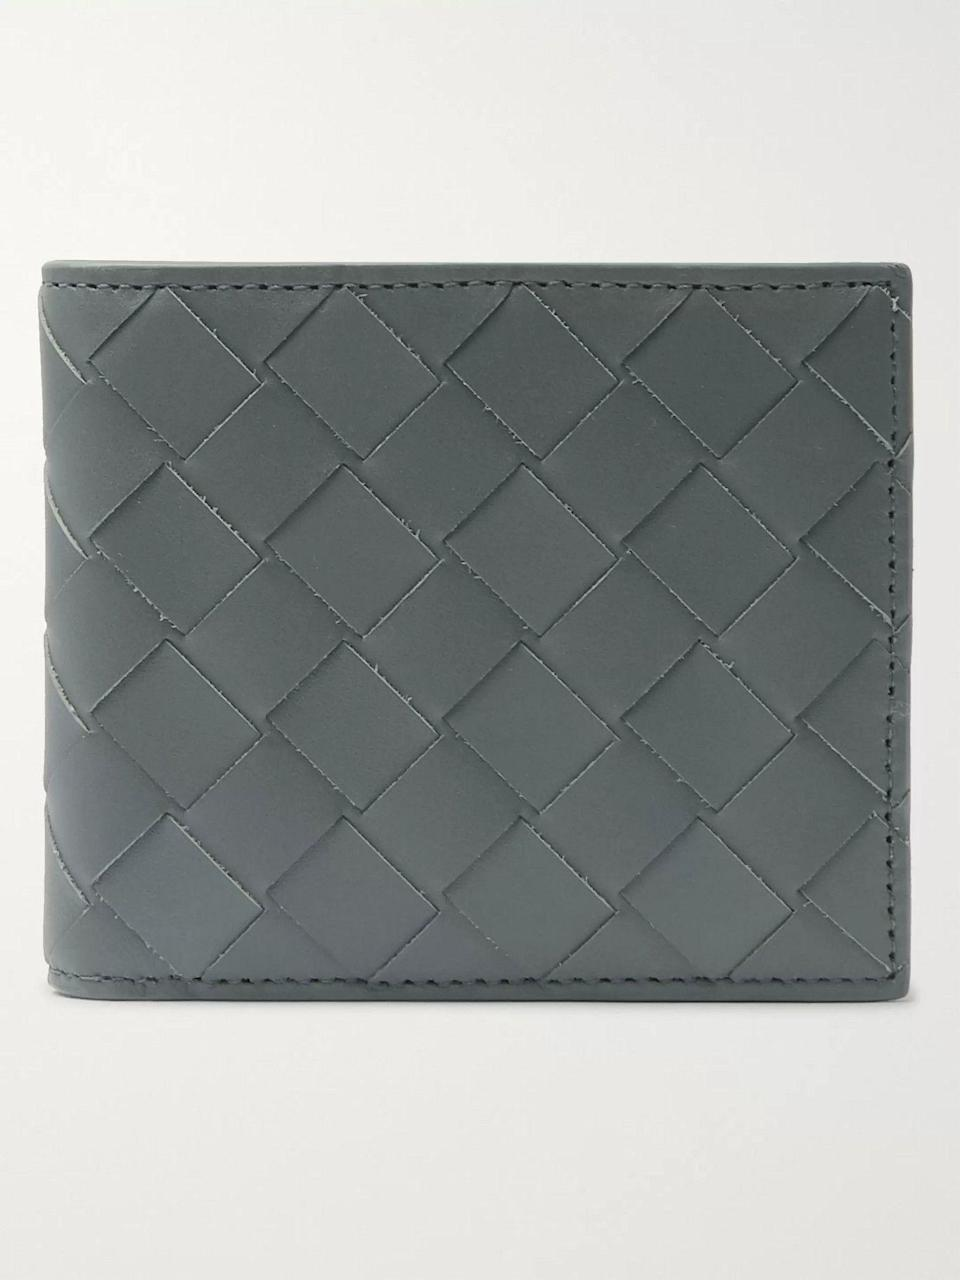 """<p><strong>Bottega Veneta</strong></p><p>mrporter.com</p><p><strong>$500.00</strong></p><p><a href=""""https://go.redirectingat.com?id=74968X1596630&url=https%3A%2F%2Fwww.mrporter.com%2Fen-us%2Fmens%2Fproduct%2Fbottega-veneta%2Faccessories%2Fbillfold-wallets%2Fintrecciato-leather-billfold-wallet%2F10516758728996025&sref=https%3A%2F%2Fwww.esquire.com%2Fstyle%2Fmens-accessories%2Fg35924710%2Fmens-luxury-wallets%2F"""" rel=""""nofollow noopener"""" target=""""_blank"""" data-ylk=""""slk:Shop Now"""" class=""""link rapid-noclick-resp"""">Shop Now</a></p><p>The Italian fashion house's woven intrecciato leather is still one of its most sought-after offerings—and with good reason.</p>"""